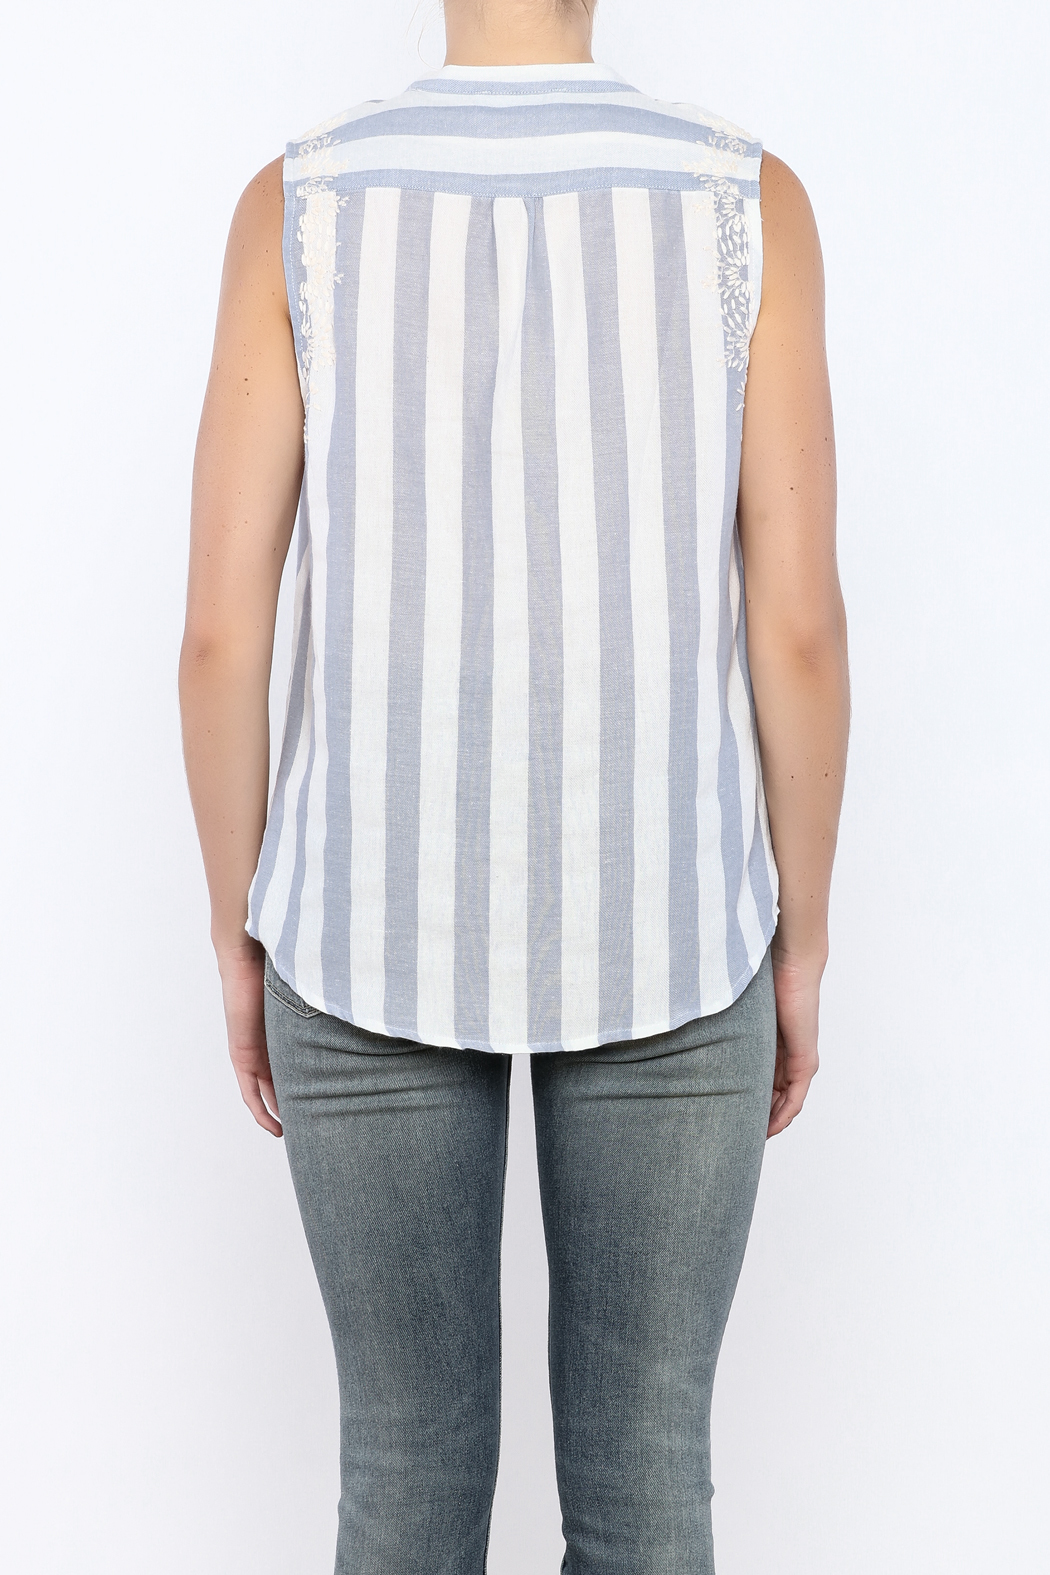 Bacio Stripe Sleeveless Top - Back Cropped Image